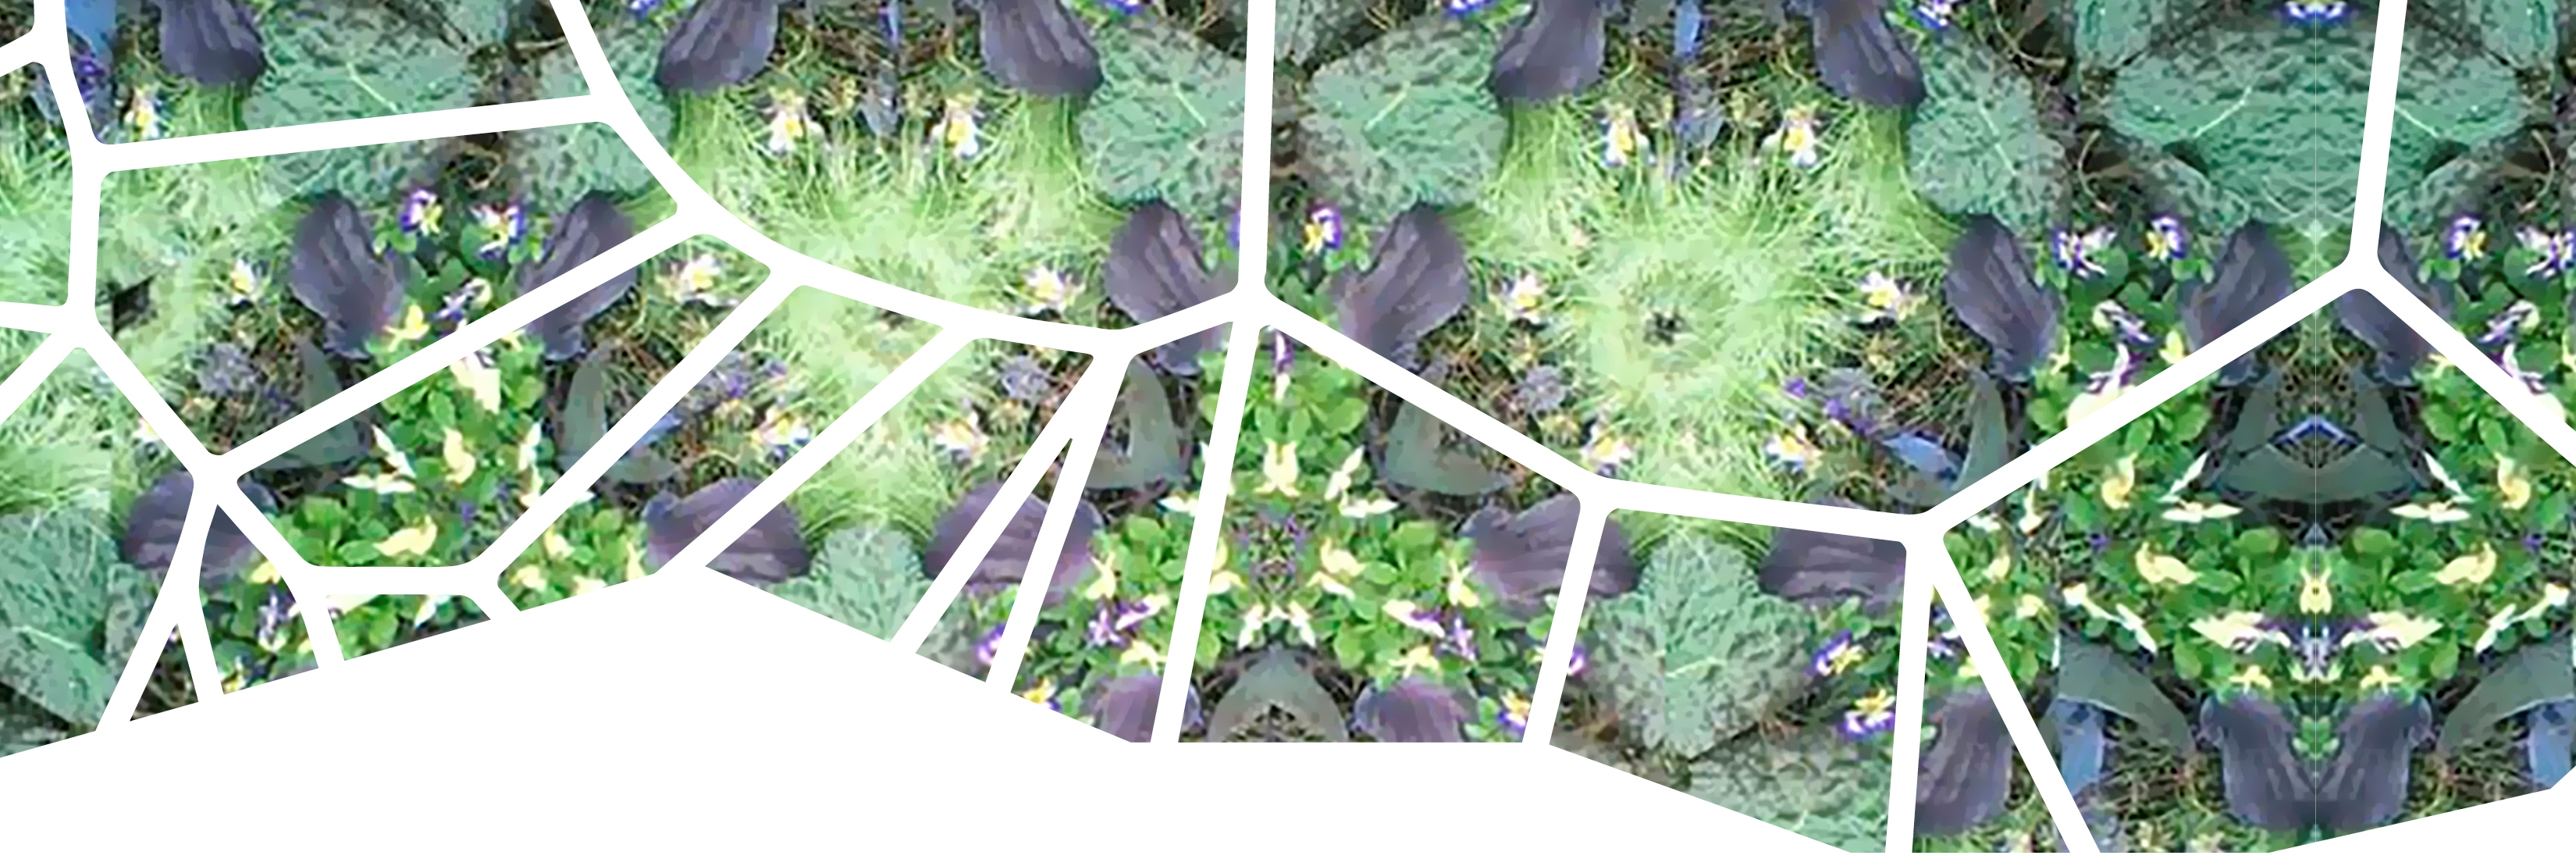 Garden Kaleidoscope At Olbrich >> Look Tropical Tessellations